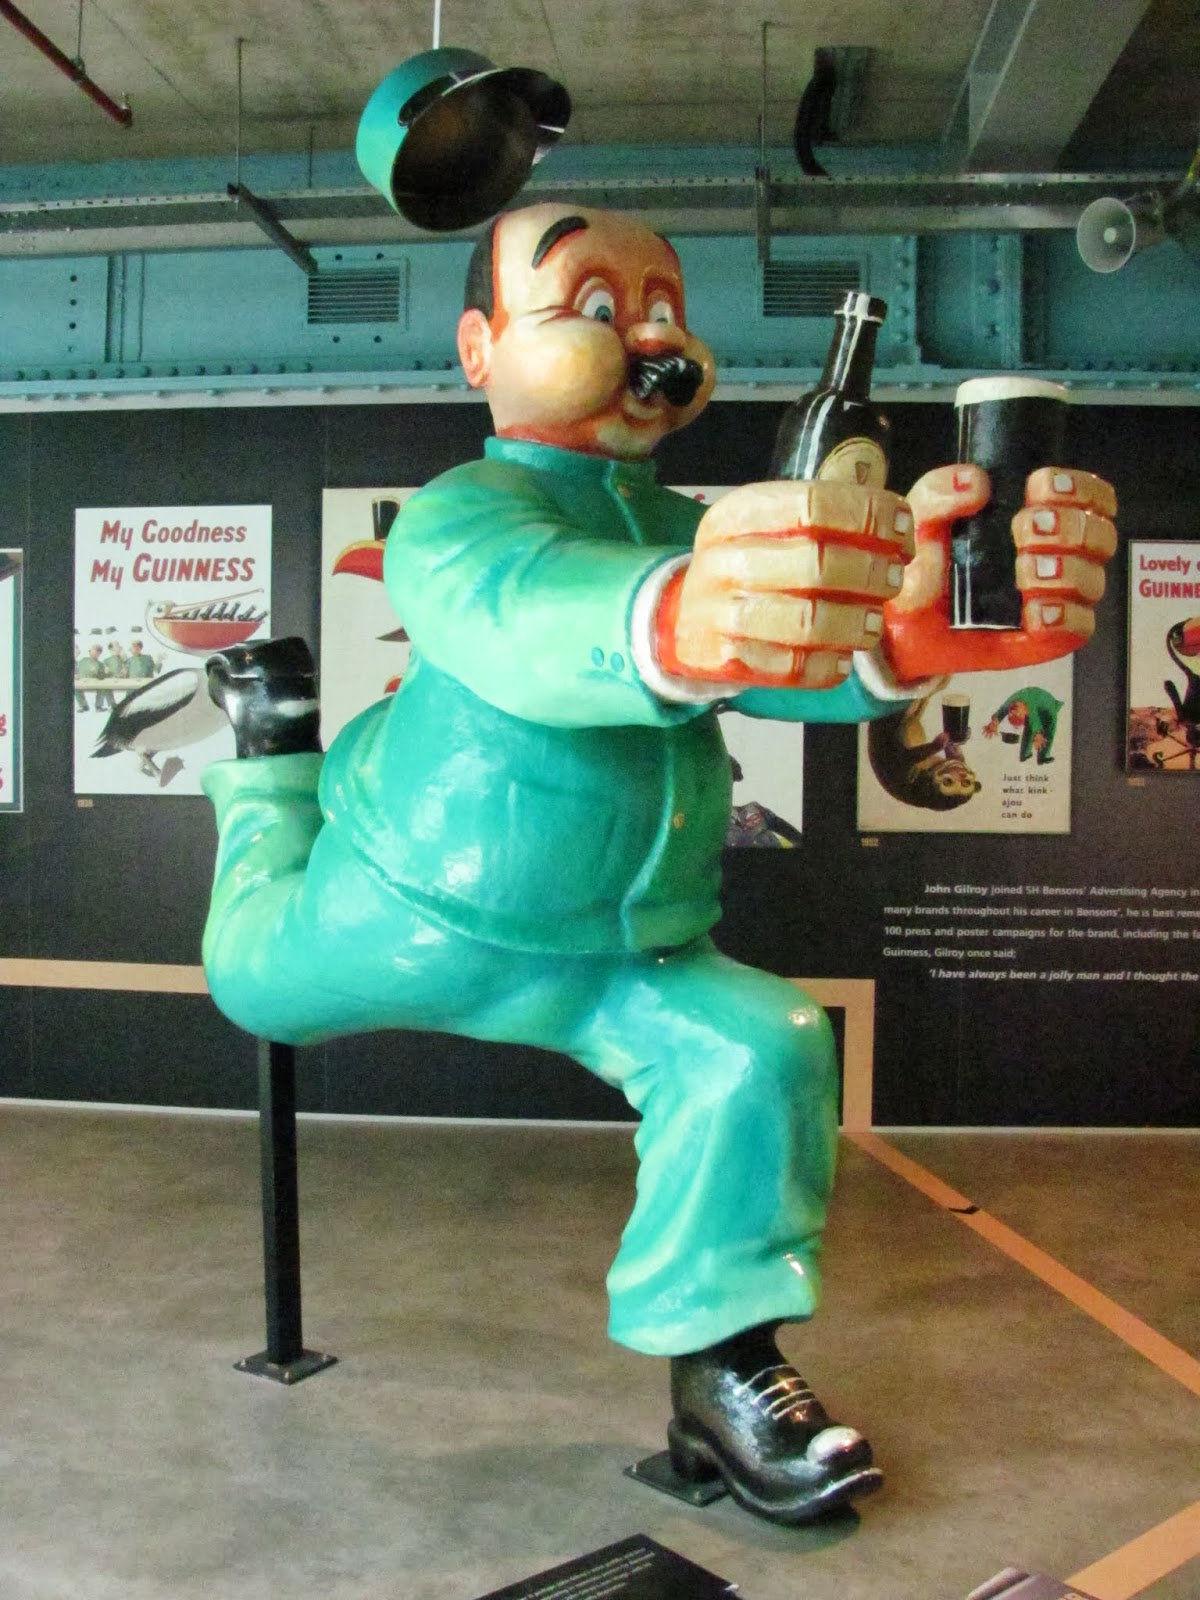 A sculpture of the Guinness advertising man running with beer at Guinness Storehouse, Dublin, Ireland